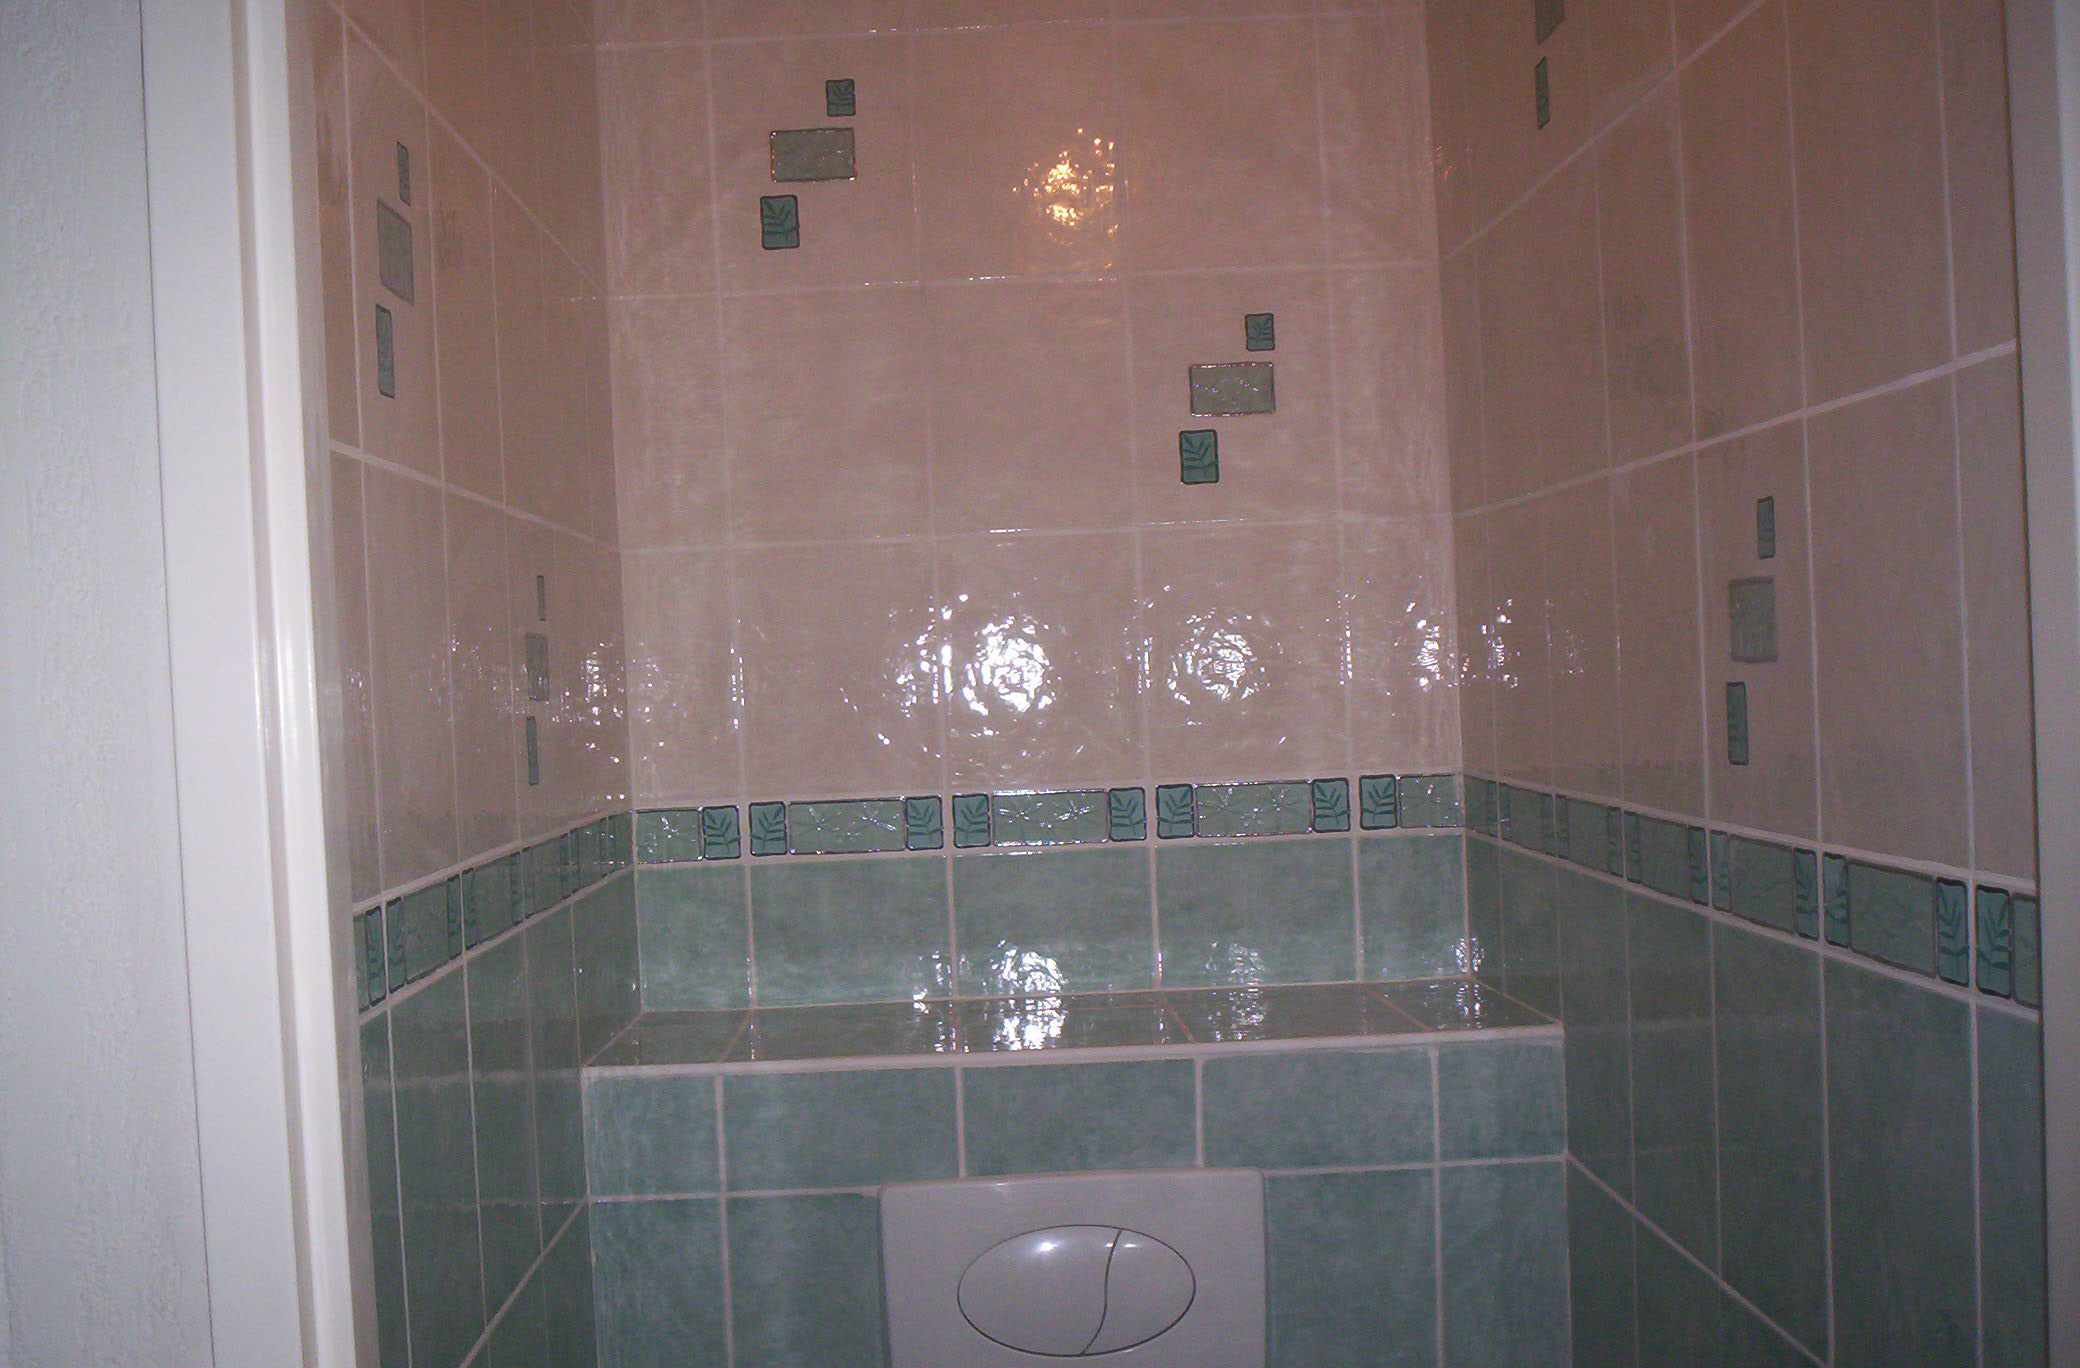 Leroy merlin salle de bain exemple with stickers carrelage for Carreaux salle de bain leroy merlin